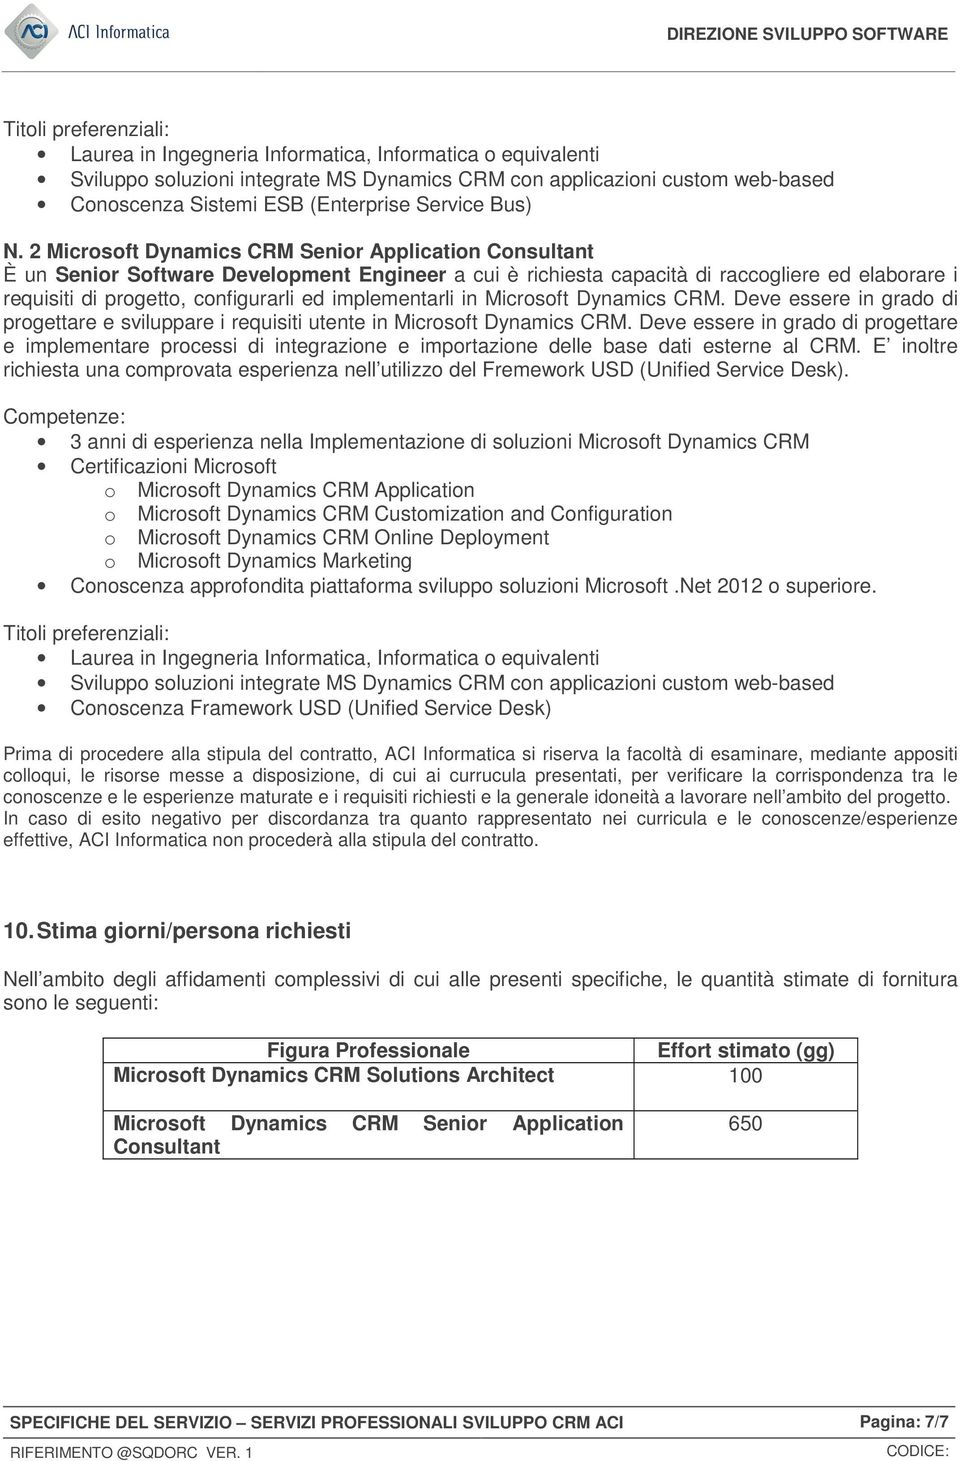 2 Microsoft Dynamics CRM Senior Application Consultant È un Senior Software Development Engineer a cui è richiesta capacità di raccogliere ed elaborare i requisiti di progetto, configurarli ed